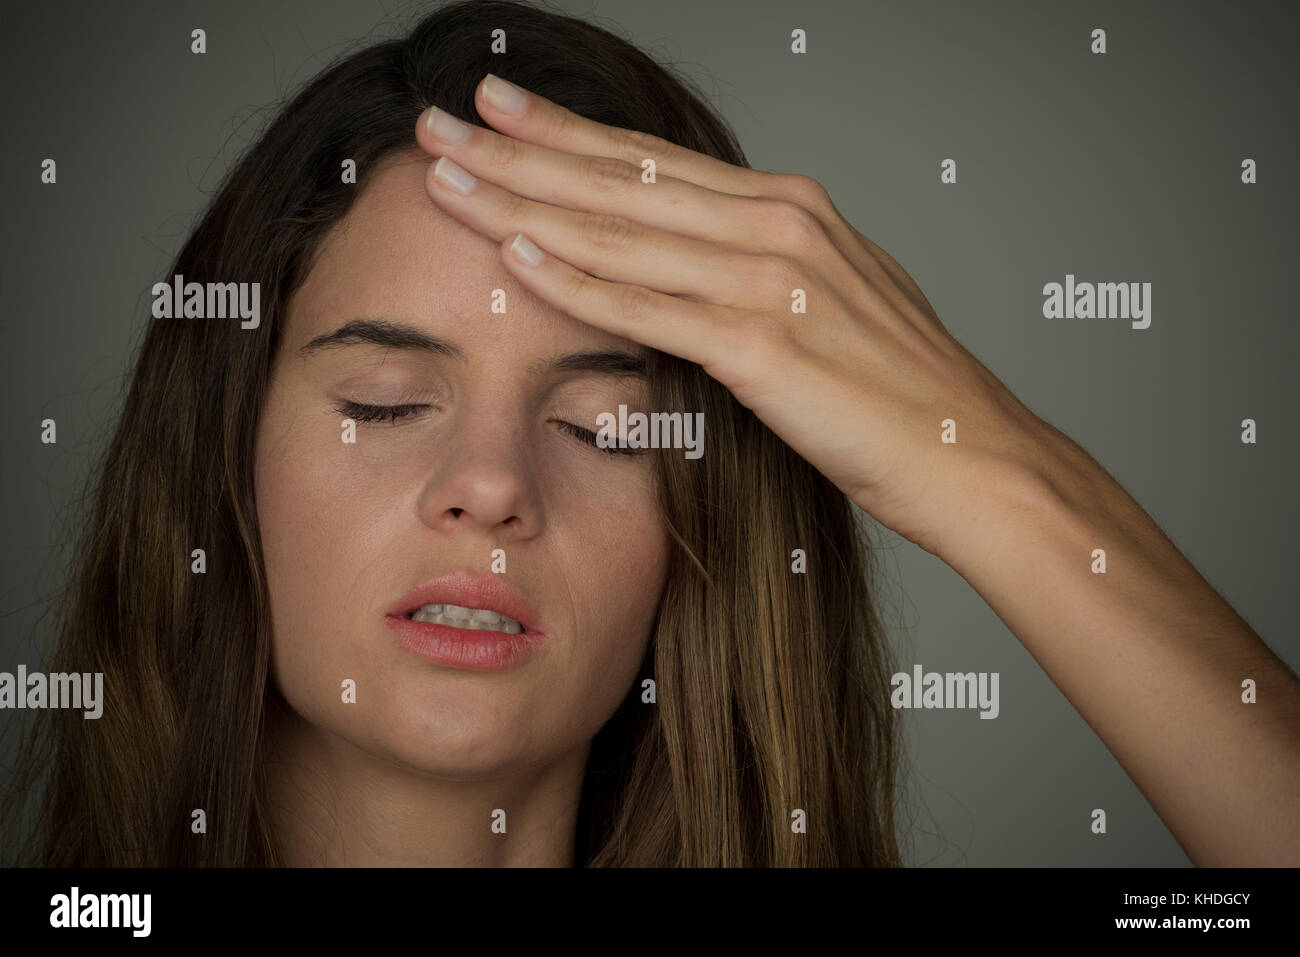 Young woman holding hand on forehead with eyes closed Stock Photo